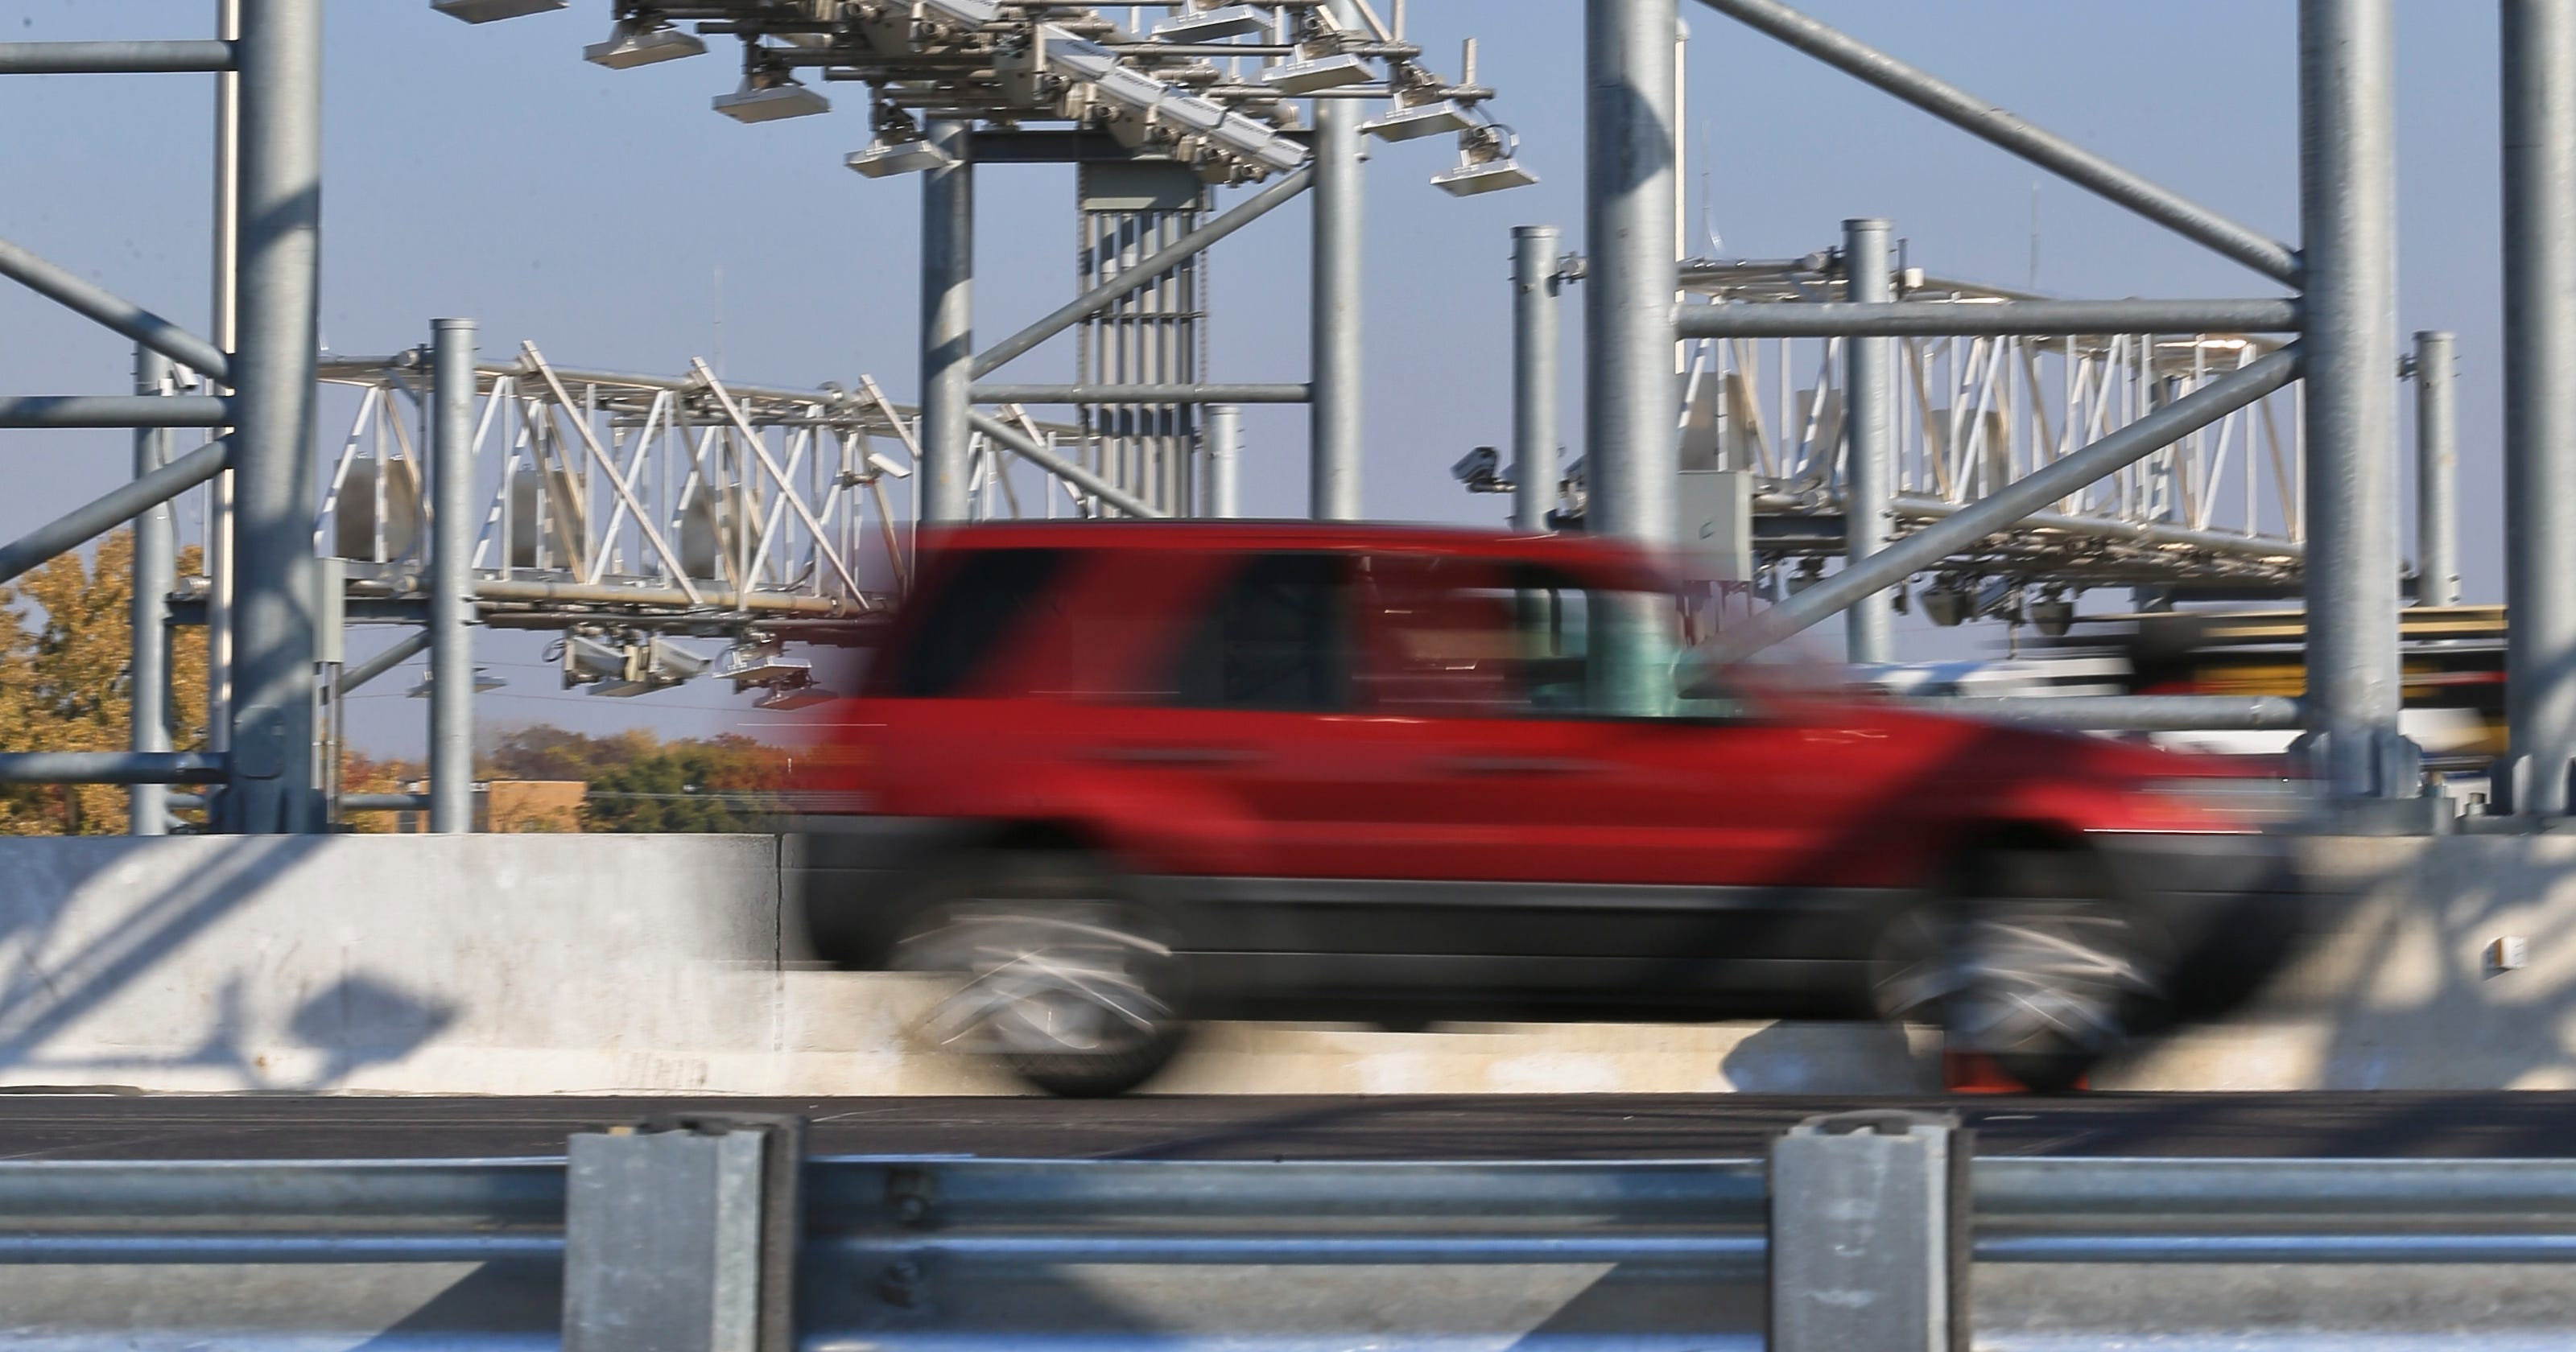 How will bridge tolls work? And how do I pay?